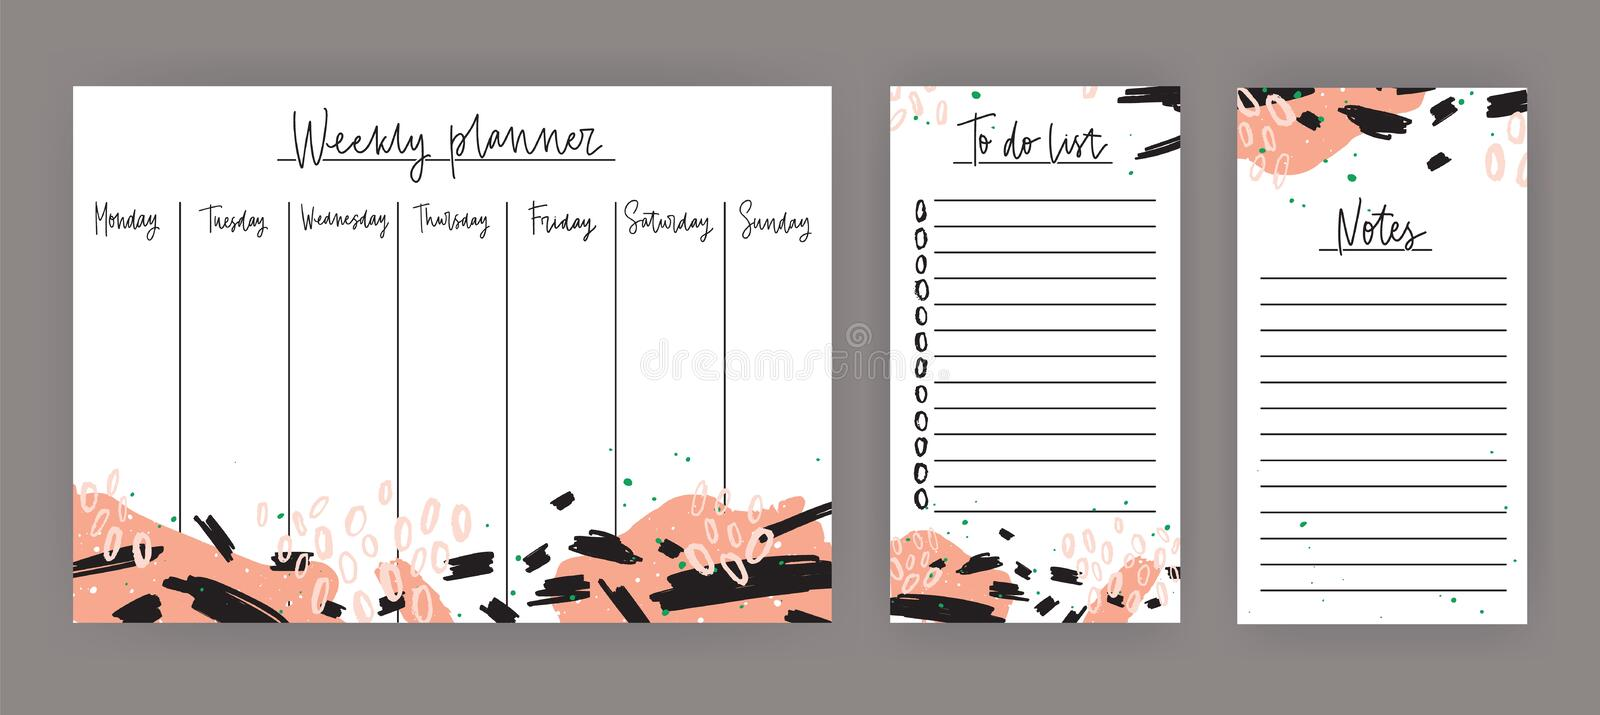 weekly planner with week days sheet for notes and to do list